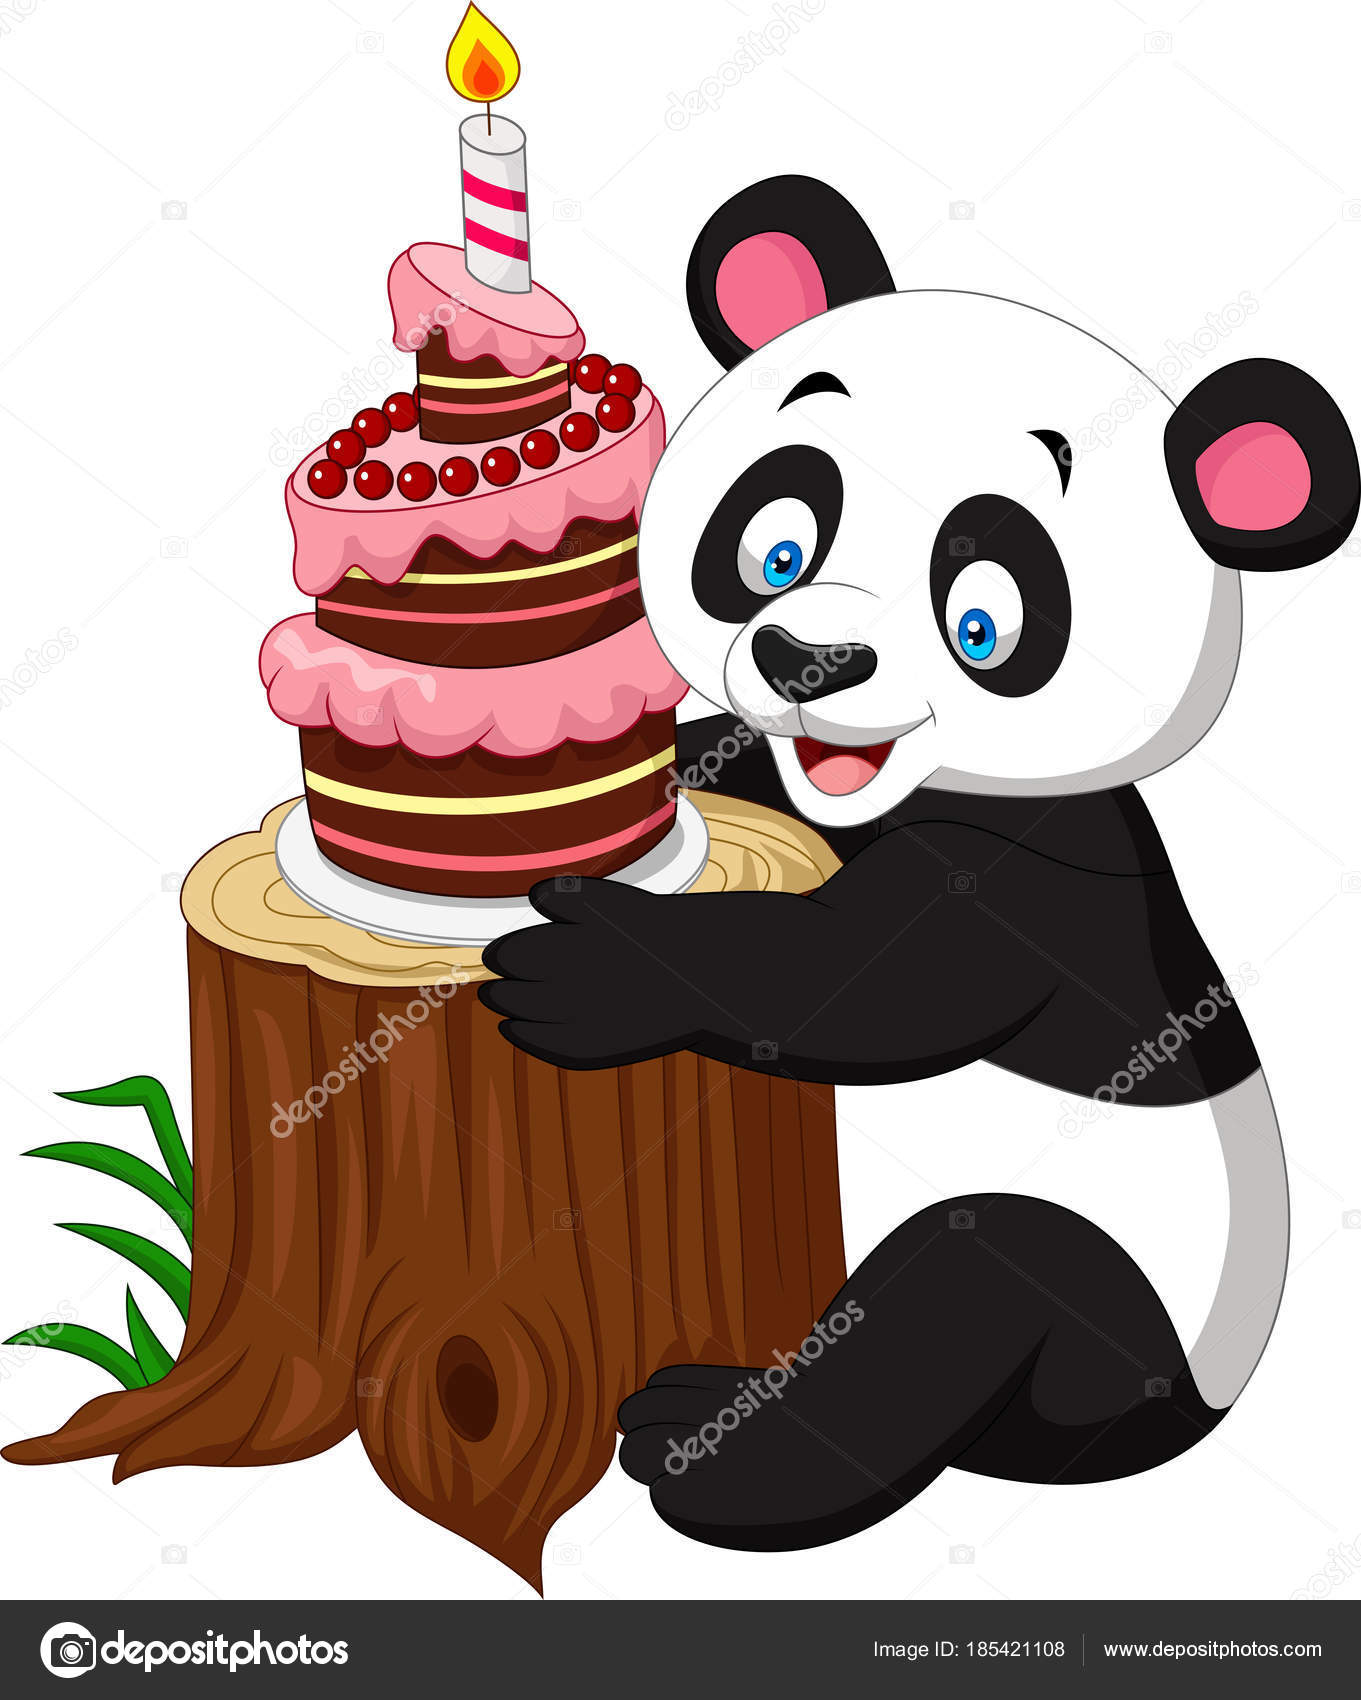 Enjoyable Iictures Funny Birthday Cakes Cartoon Funny Panda Birthday Personalised Birthday Cards Petedlily Jamesorg